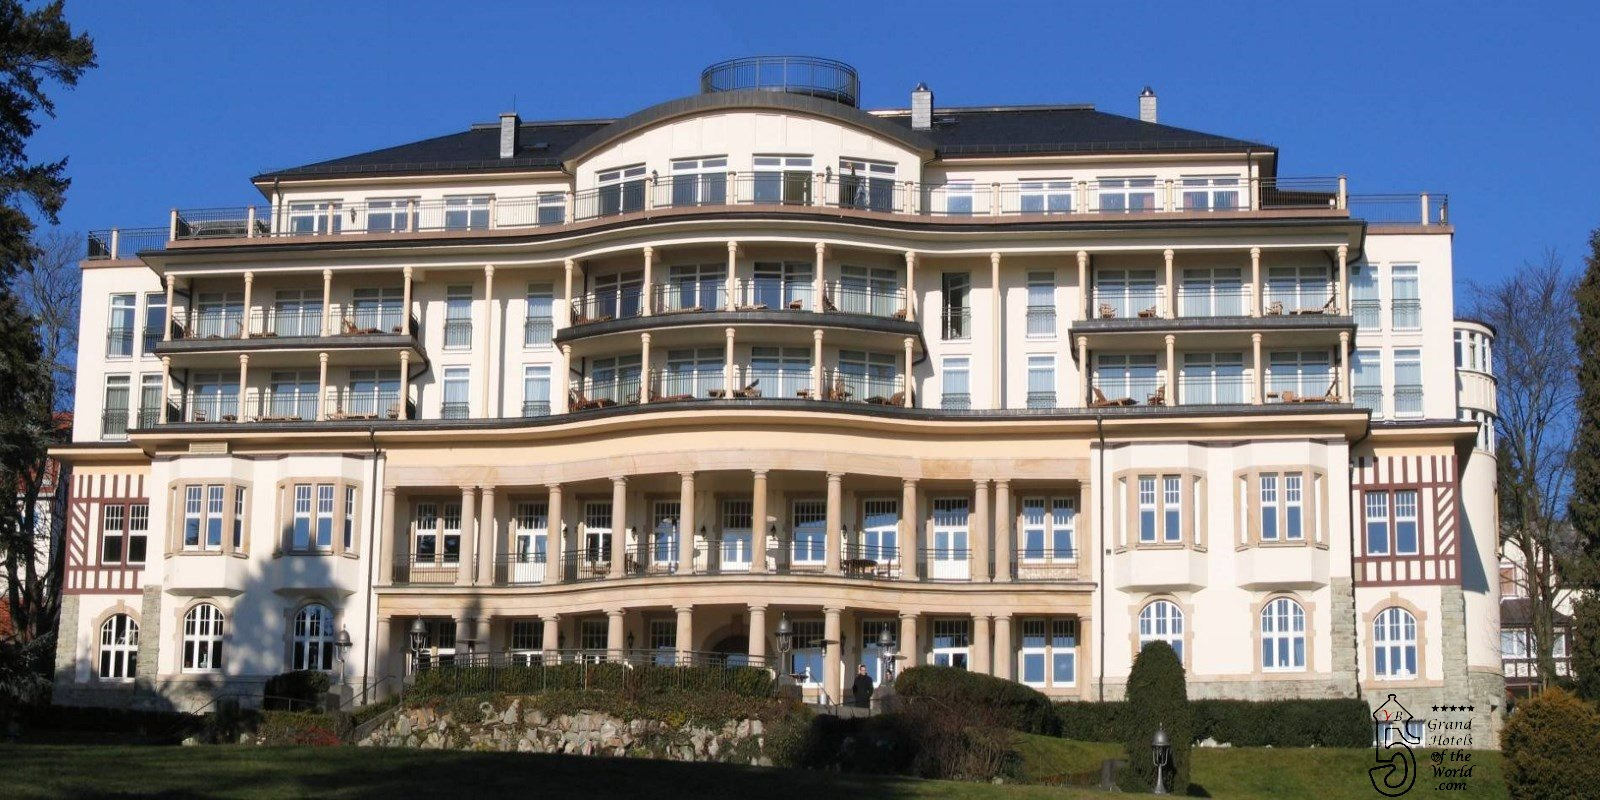 Grand Hotel Falkenstein in Konigstein